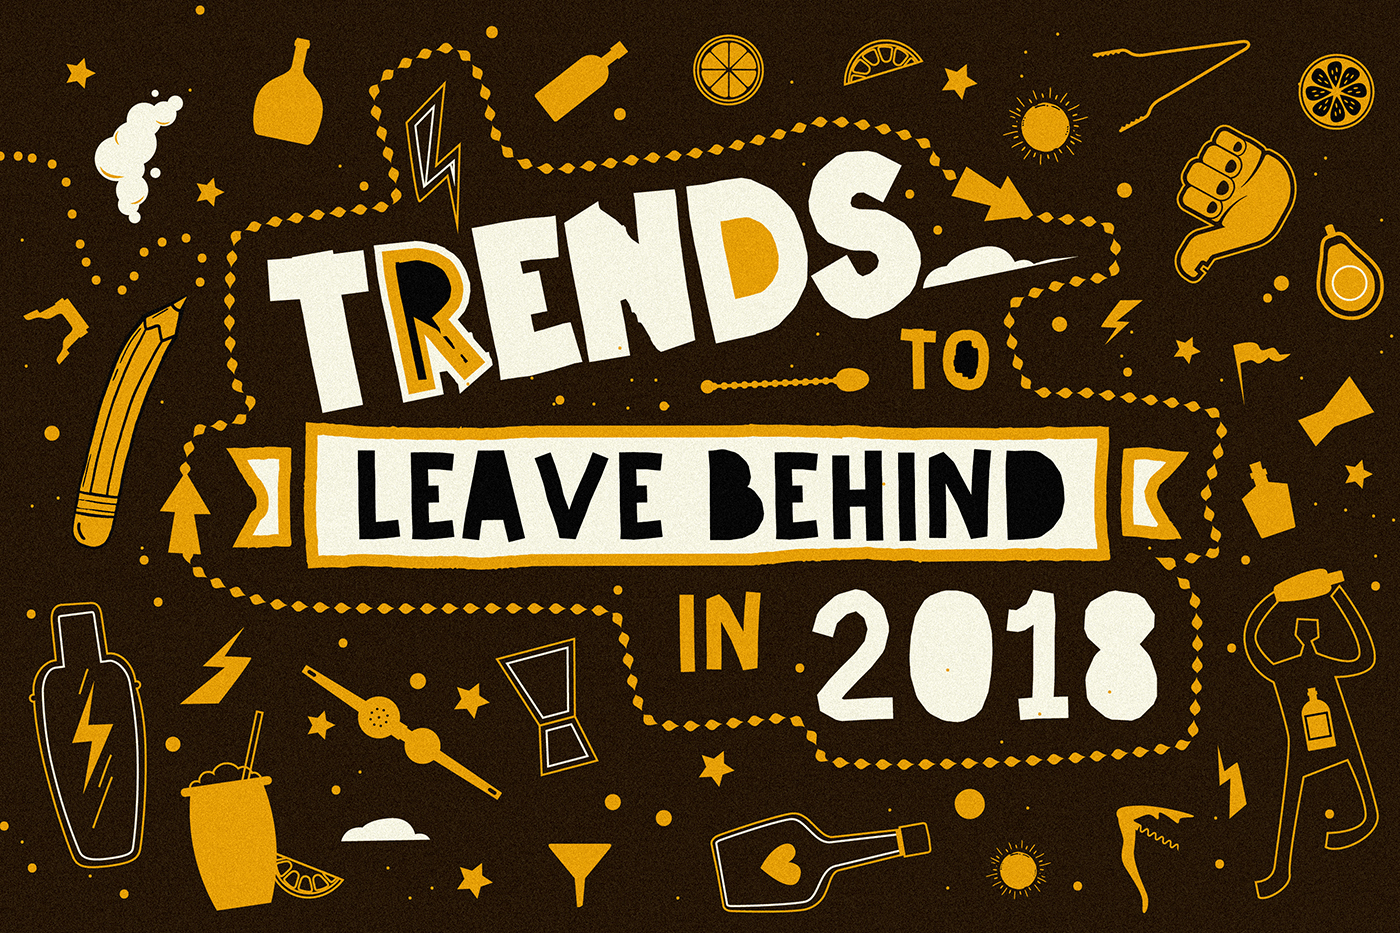 Here's What The Bar Industry Wants Left Behind In 2018 photo